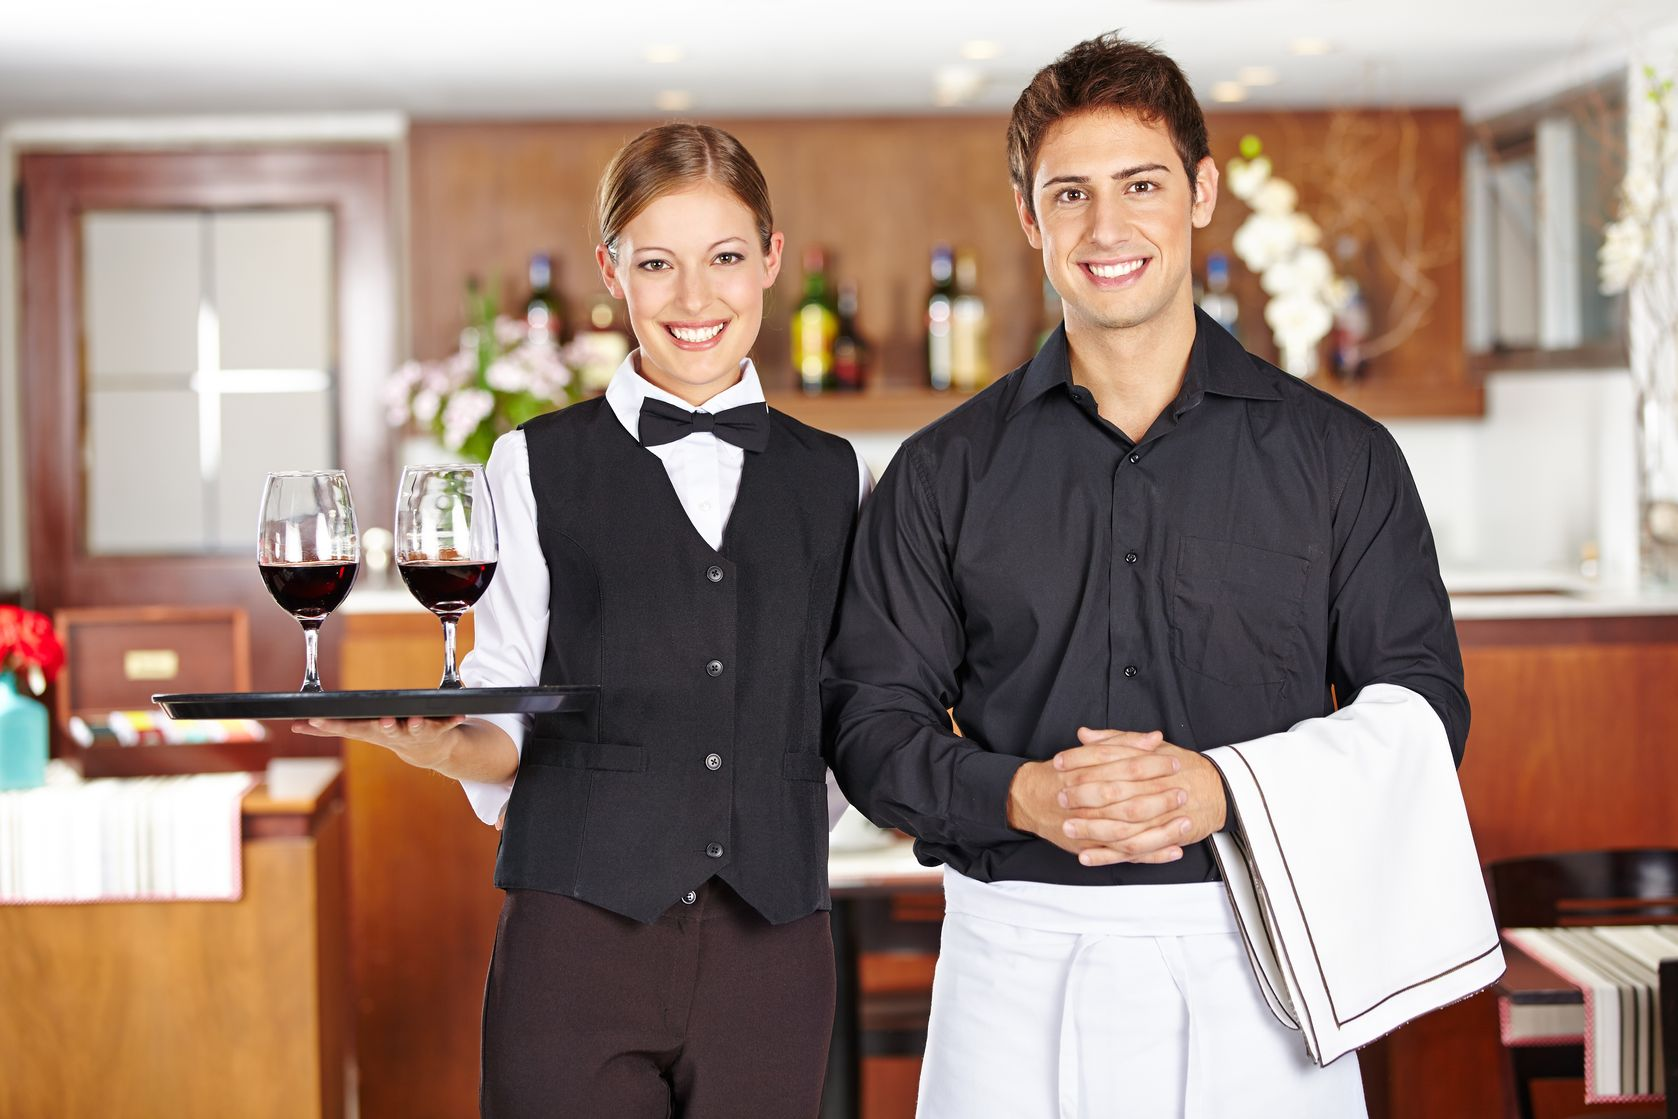 Event and Catering Business for sale in Sunshine Coast